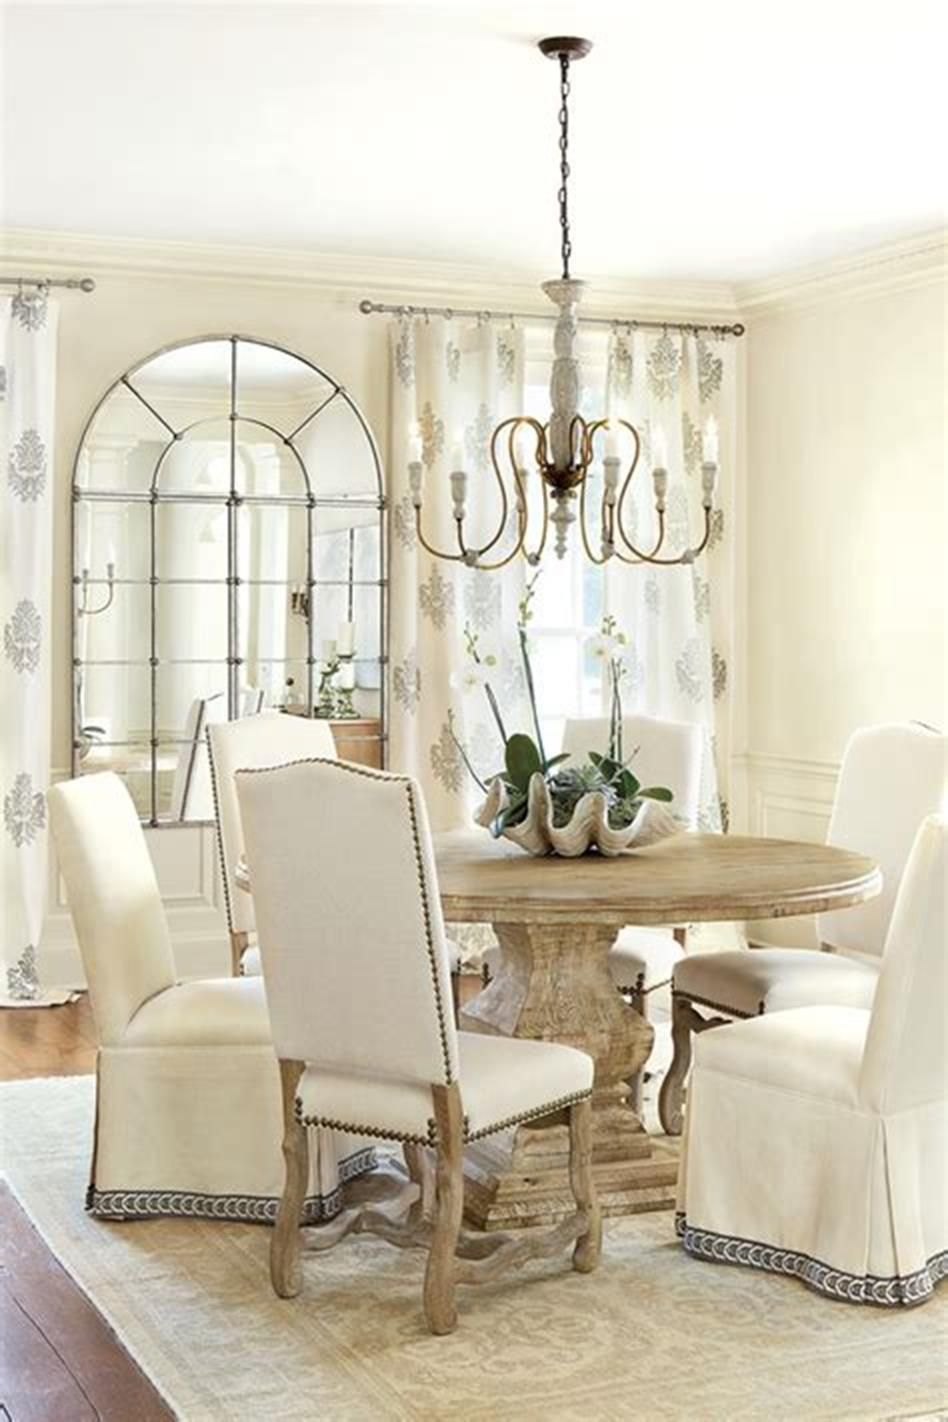 32 Stunning Dining Room Decorating Ideas On A Budget Neutral Dining Room Rustic Dining Room Dining Room Table Centerpieces